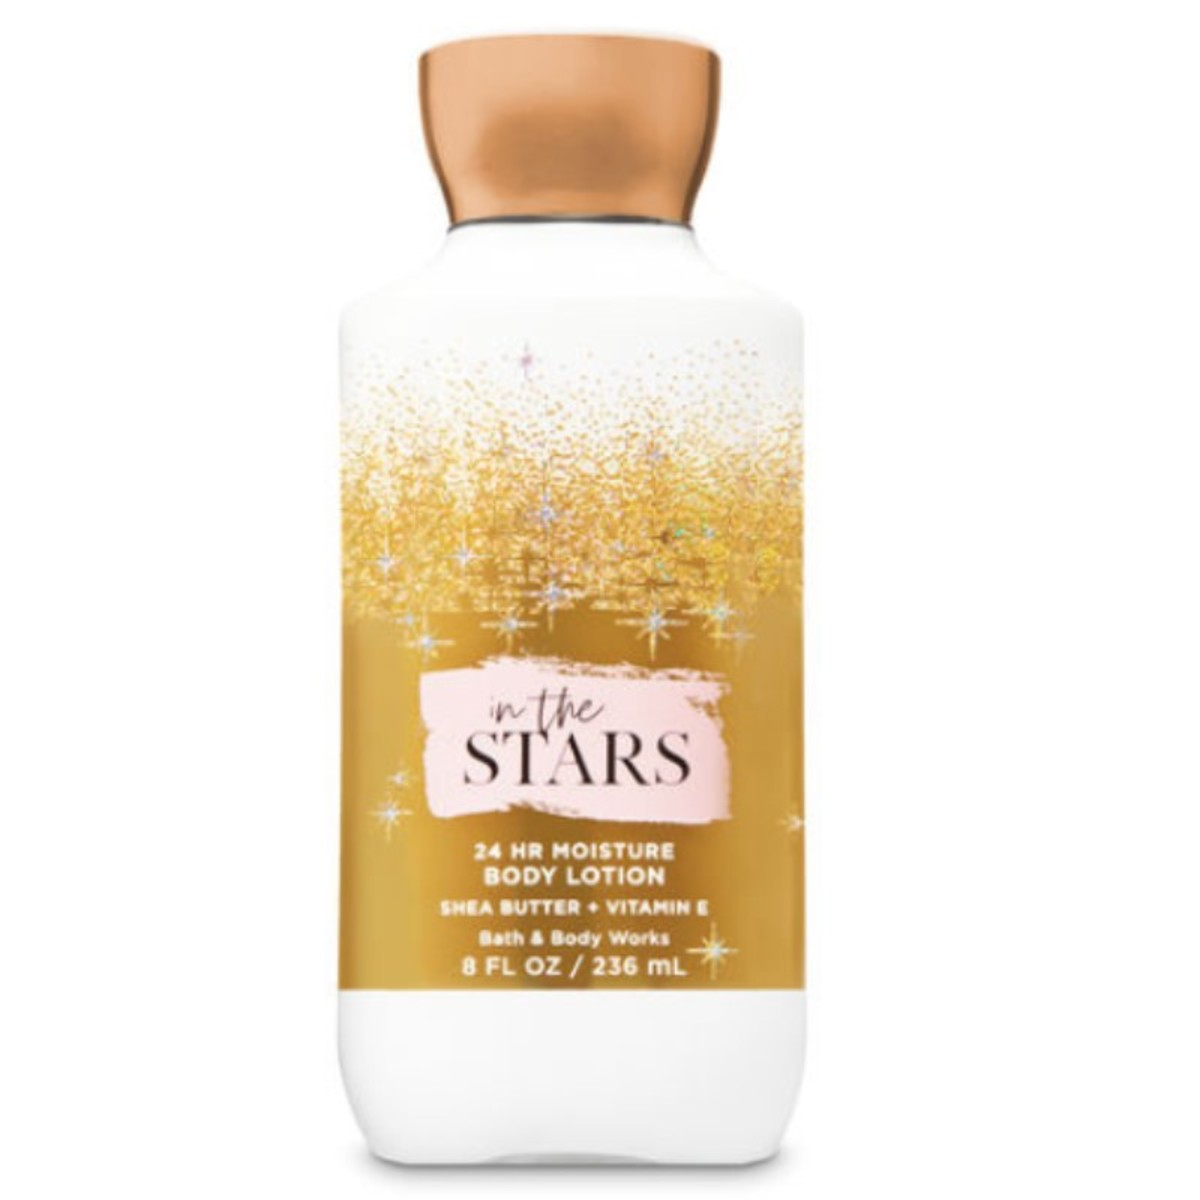 In the Stars Super Smooth Body Lotion (Parallel Imports Product)